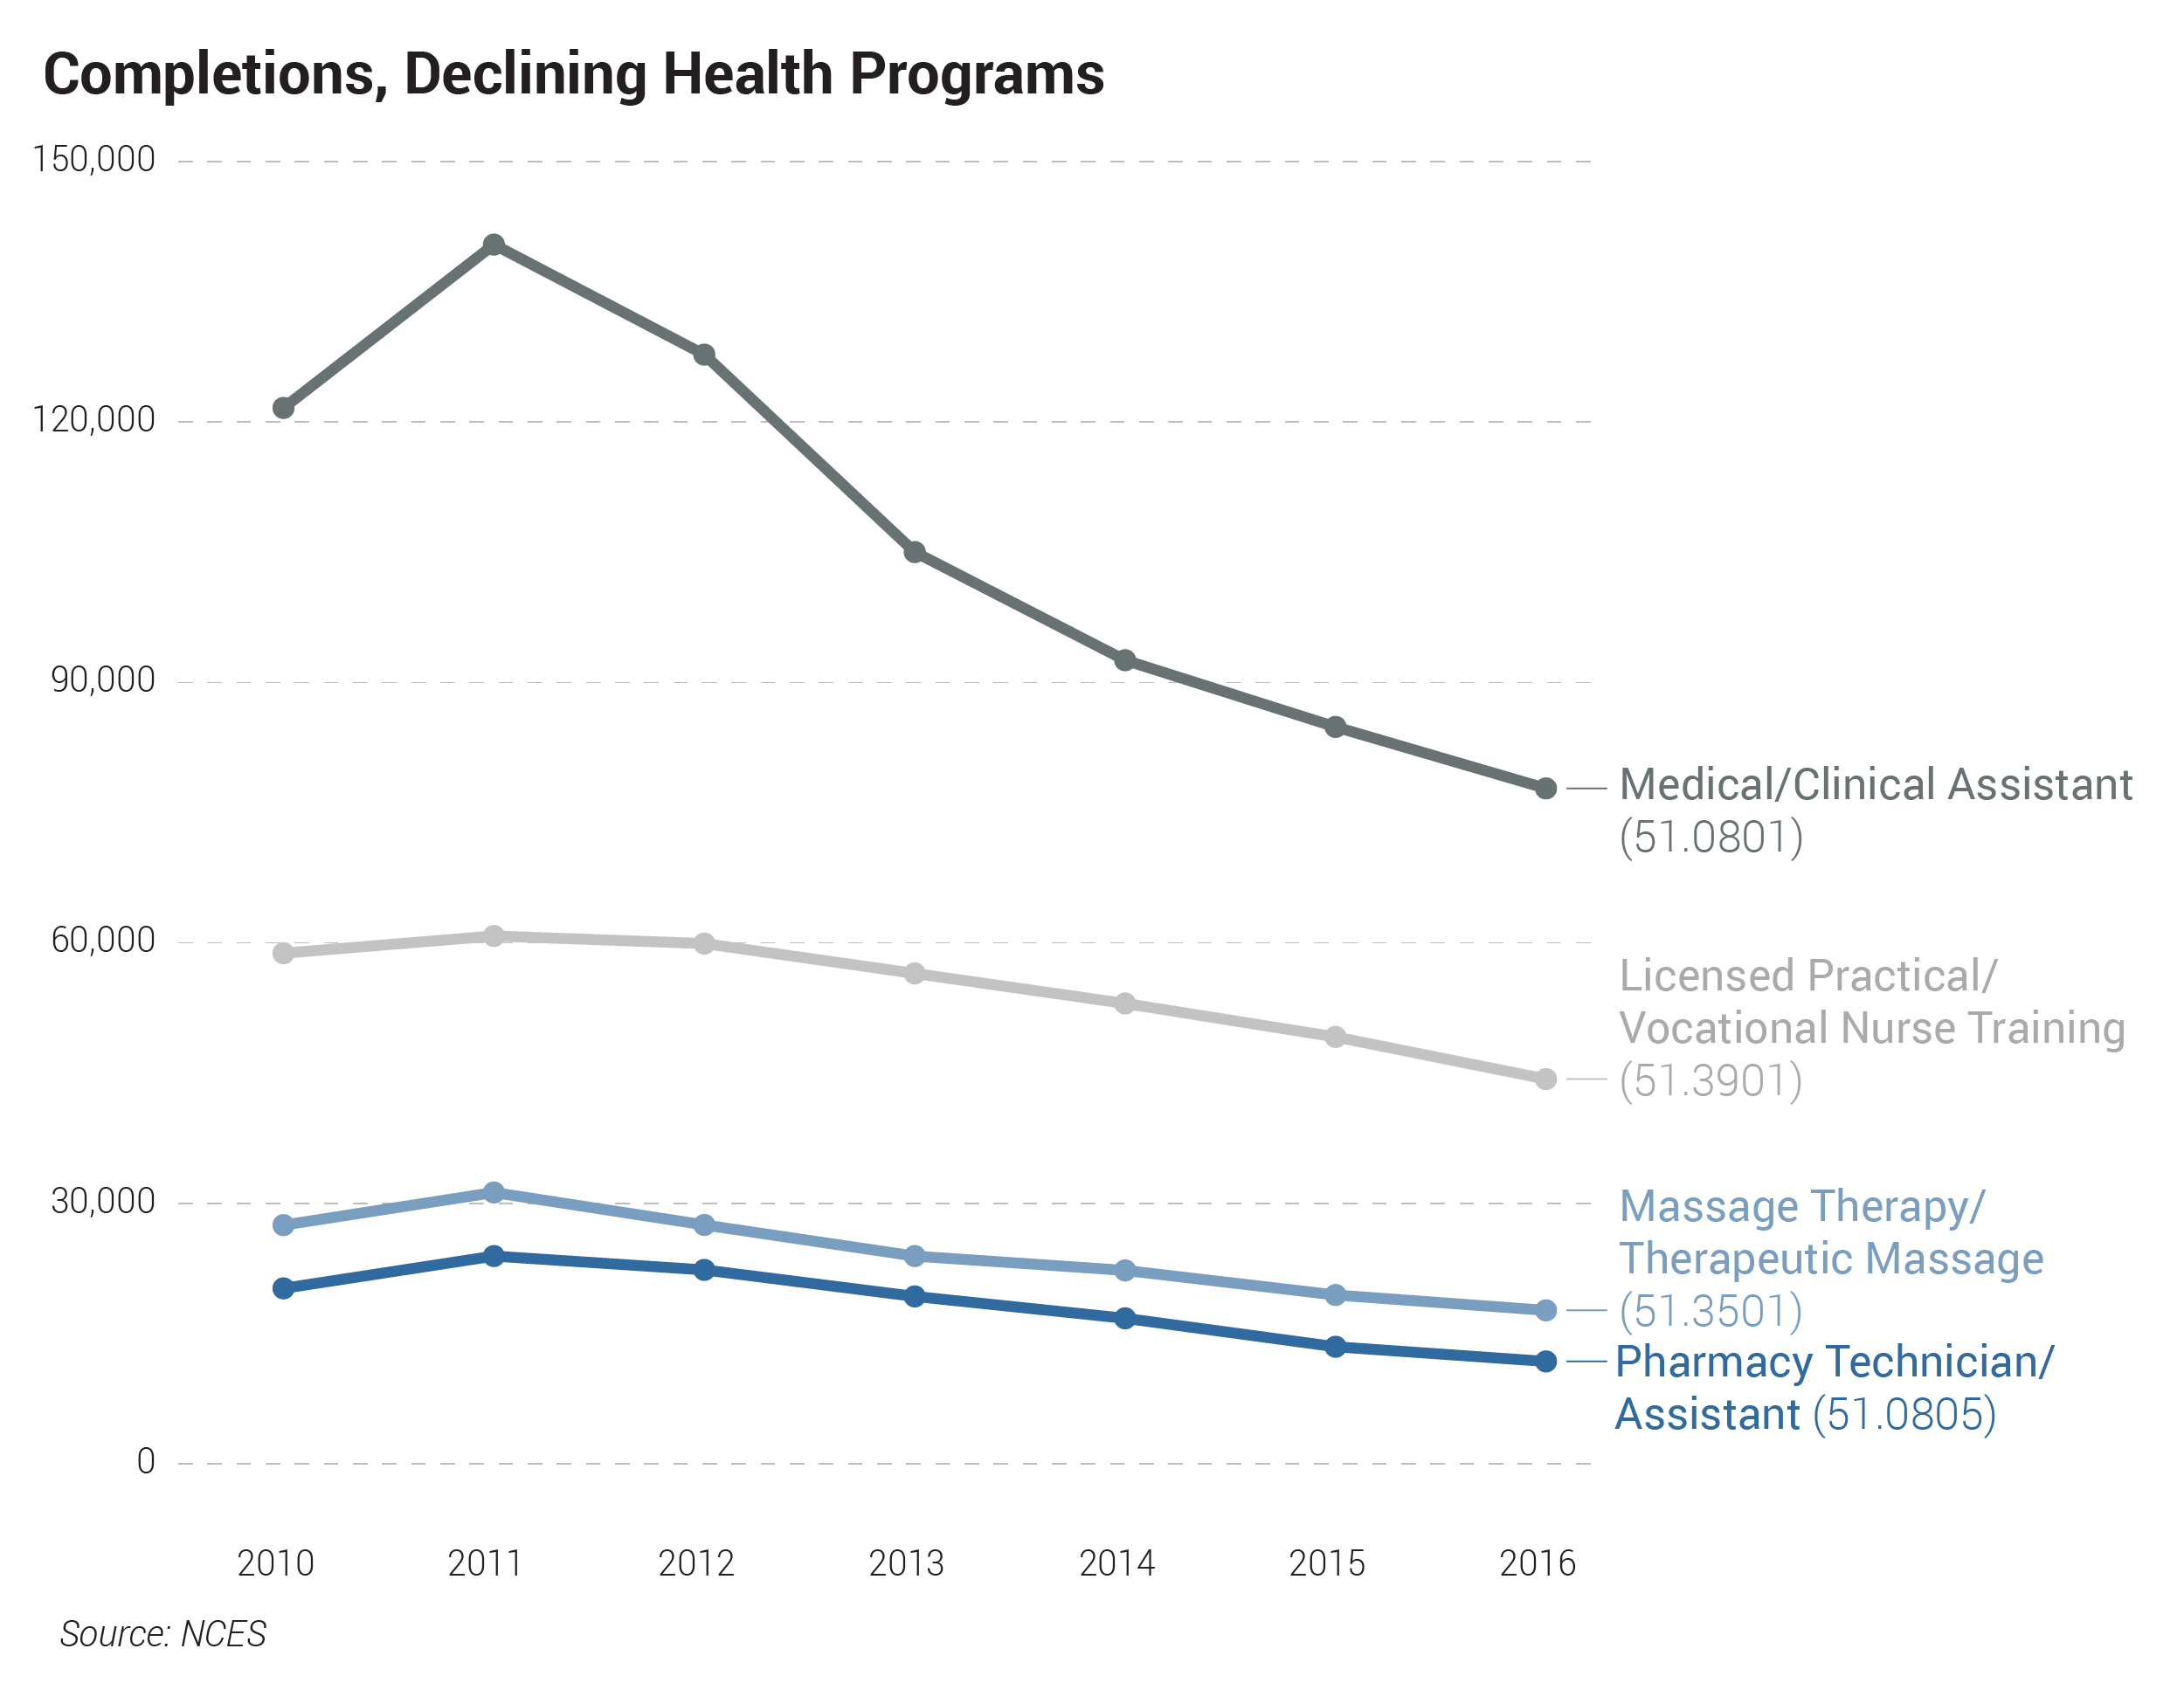 Completions, Declining Health Programs